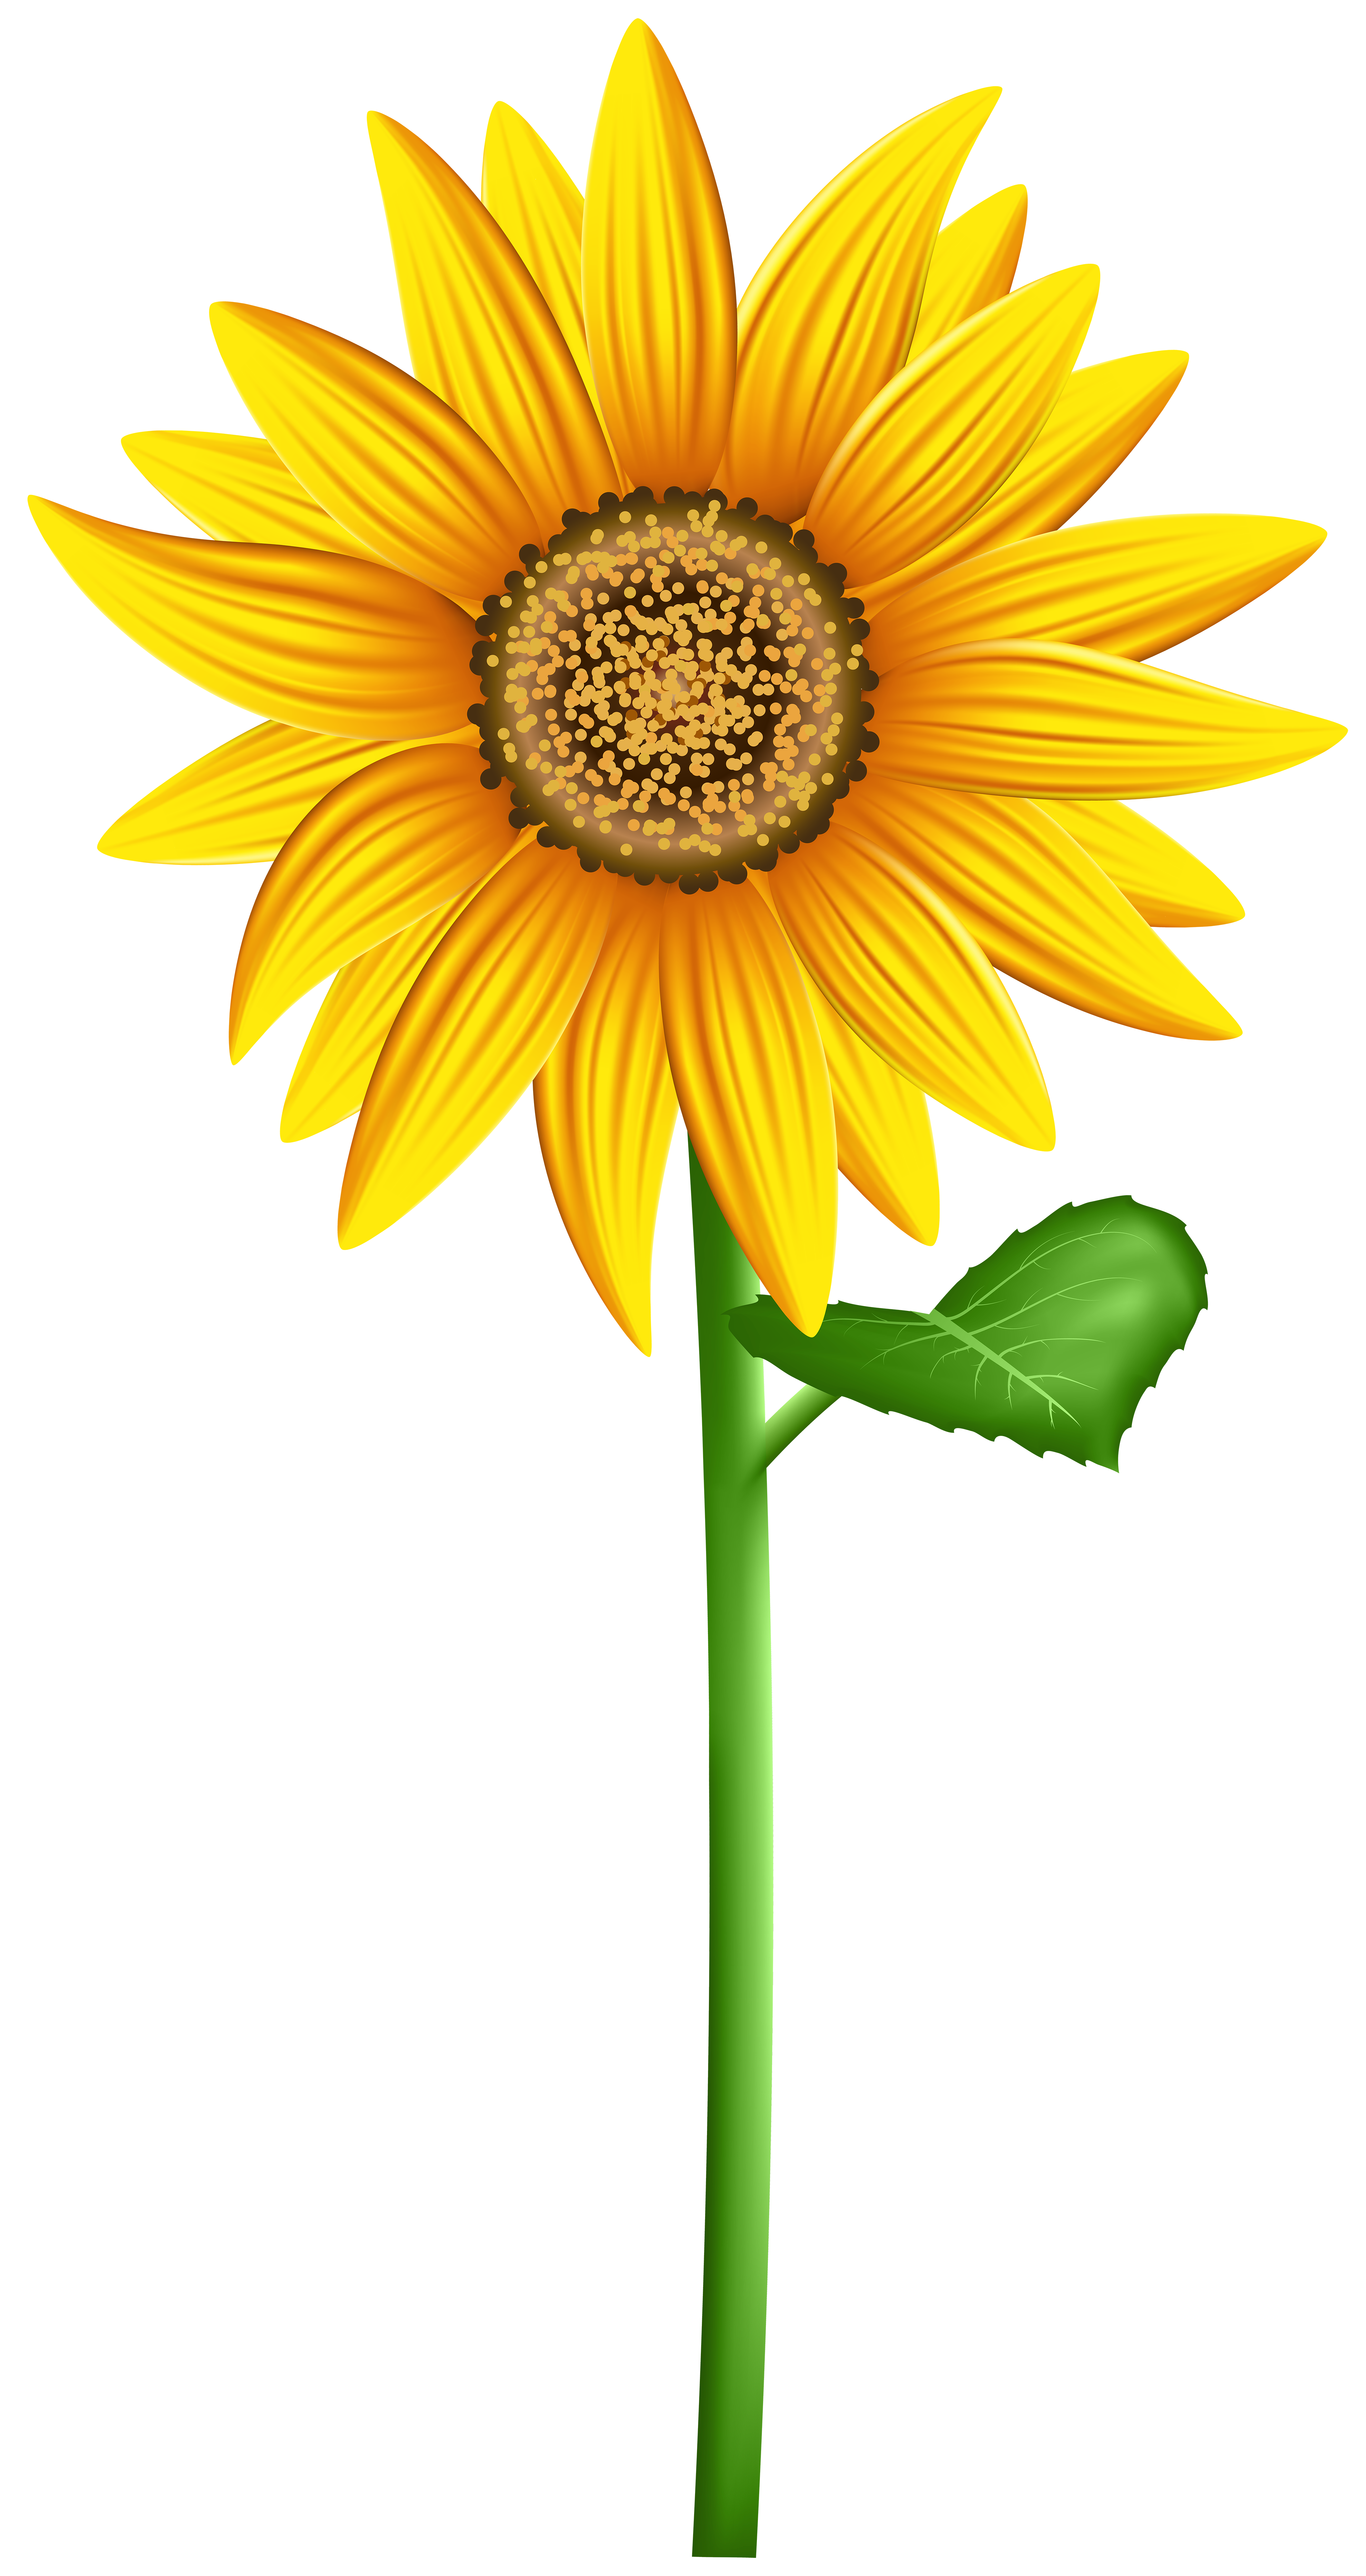 image royalty free stock Clipart sunflower. Png transparent clip art